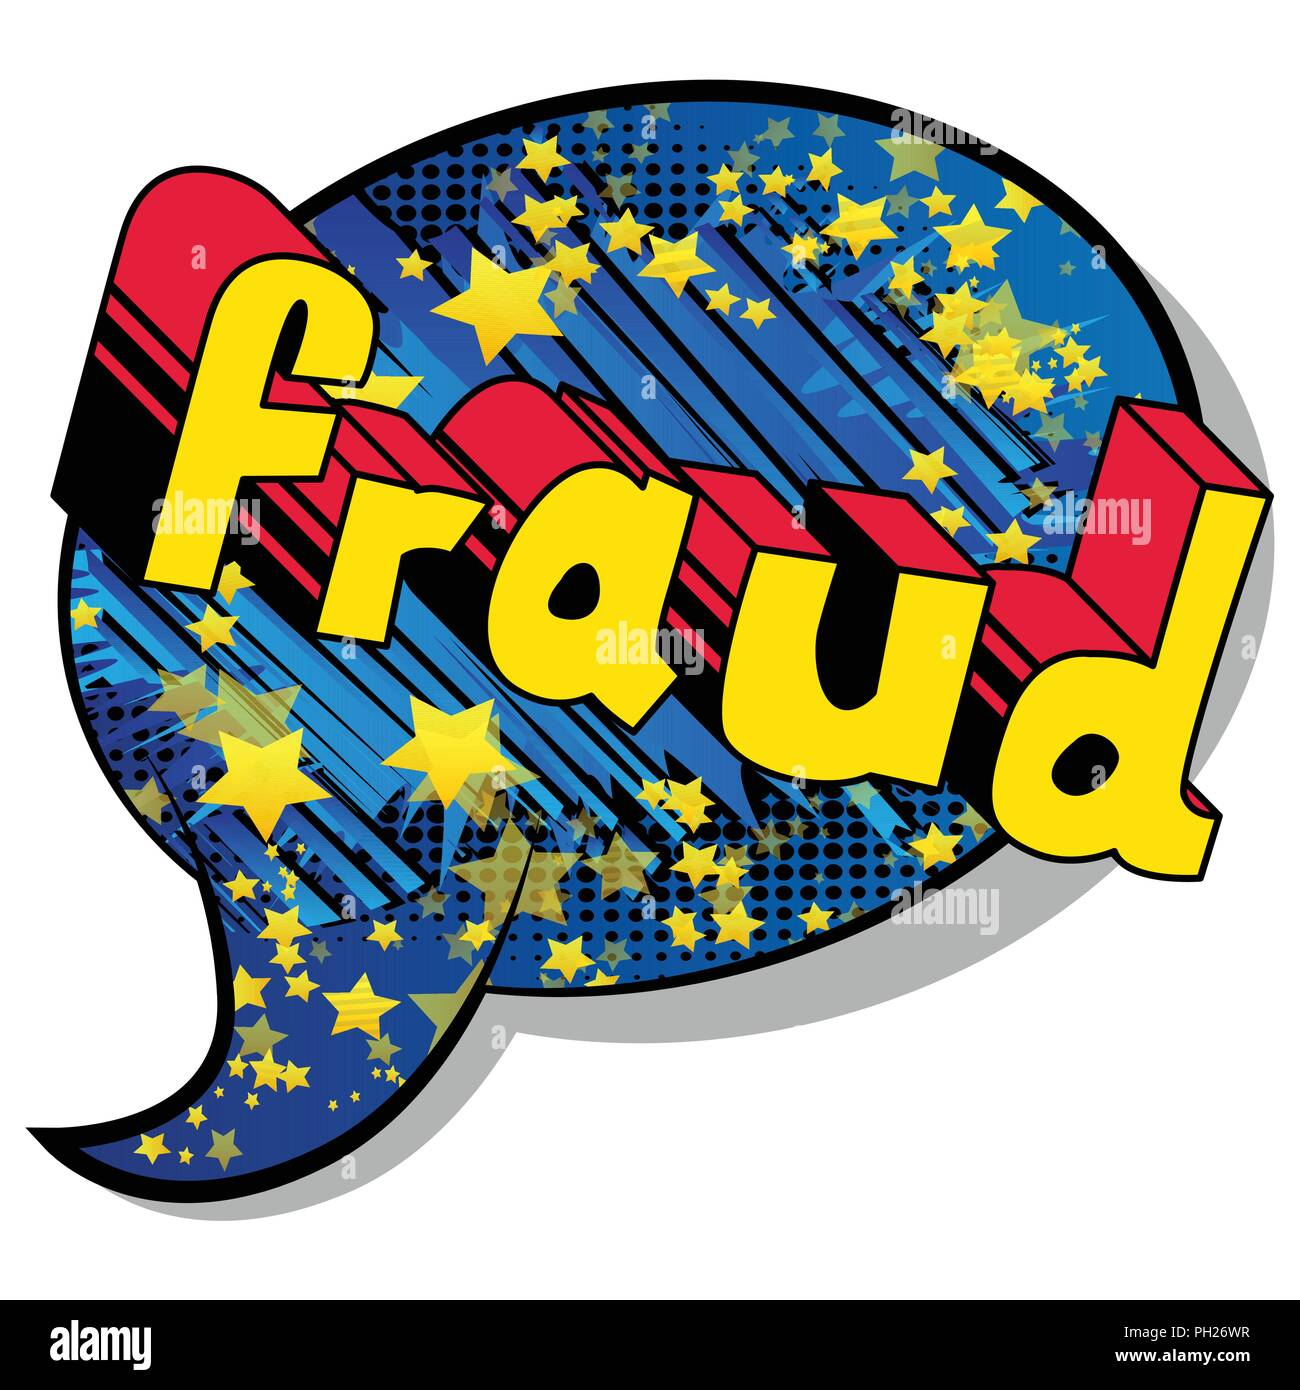 Fraud - Vector illustrated comic book style phrase. - Stock Vector